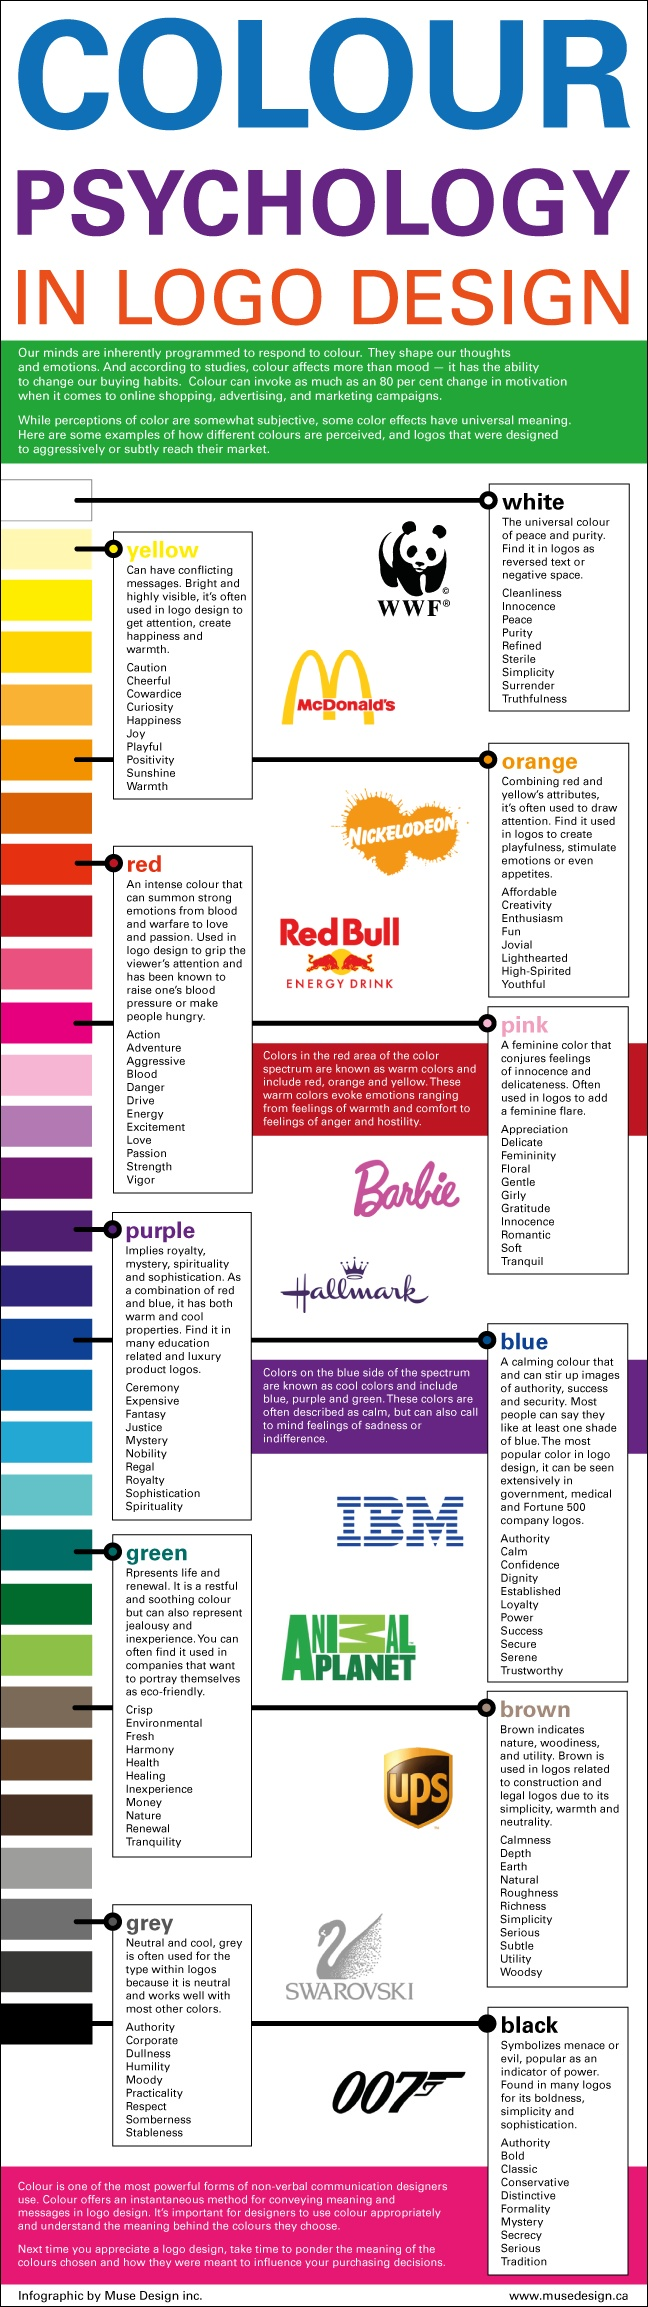 A great infographic about colors used in logo design.  #Branding #image